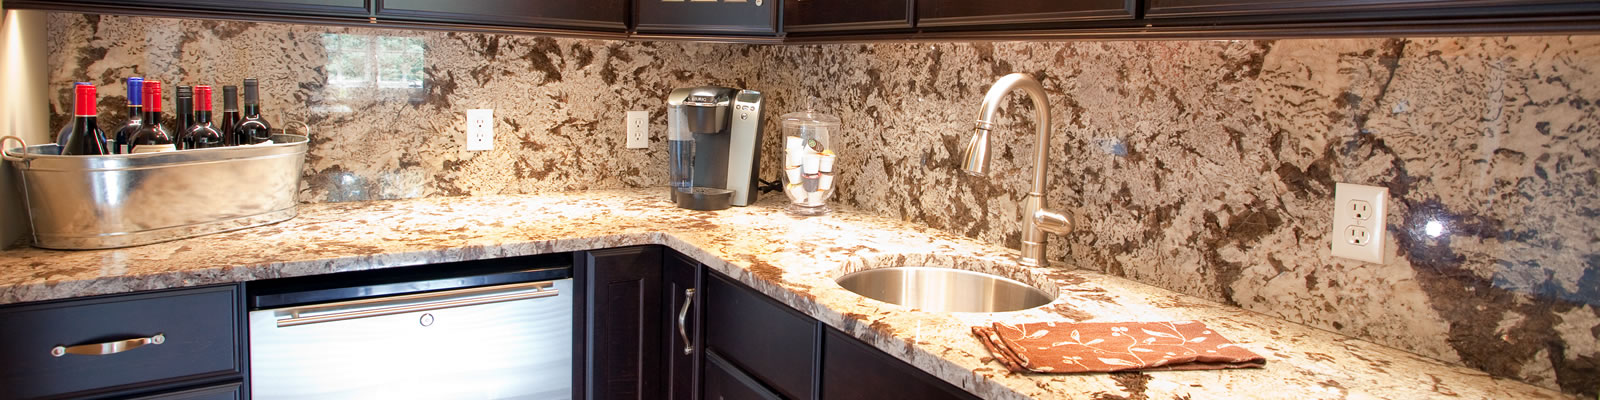 Granite Countertops Phoenix